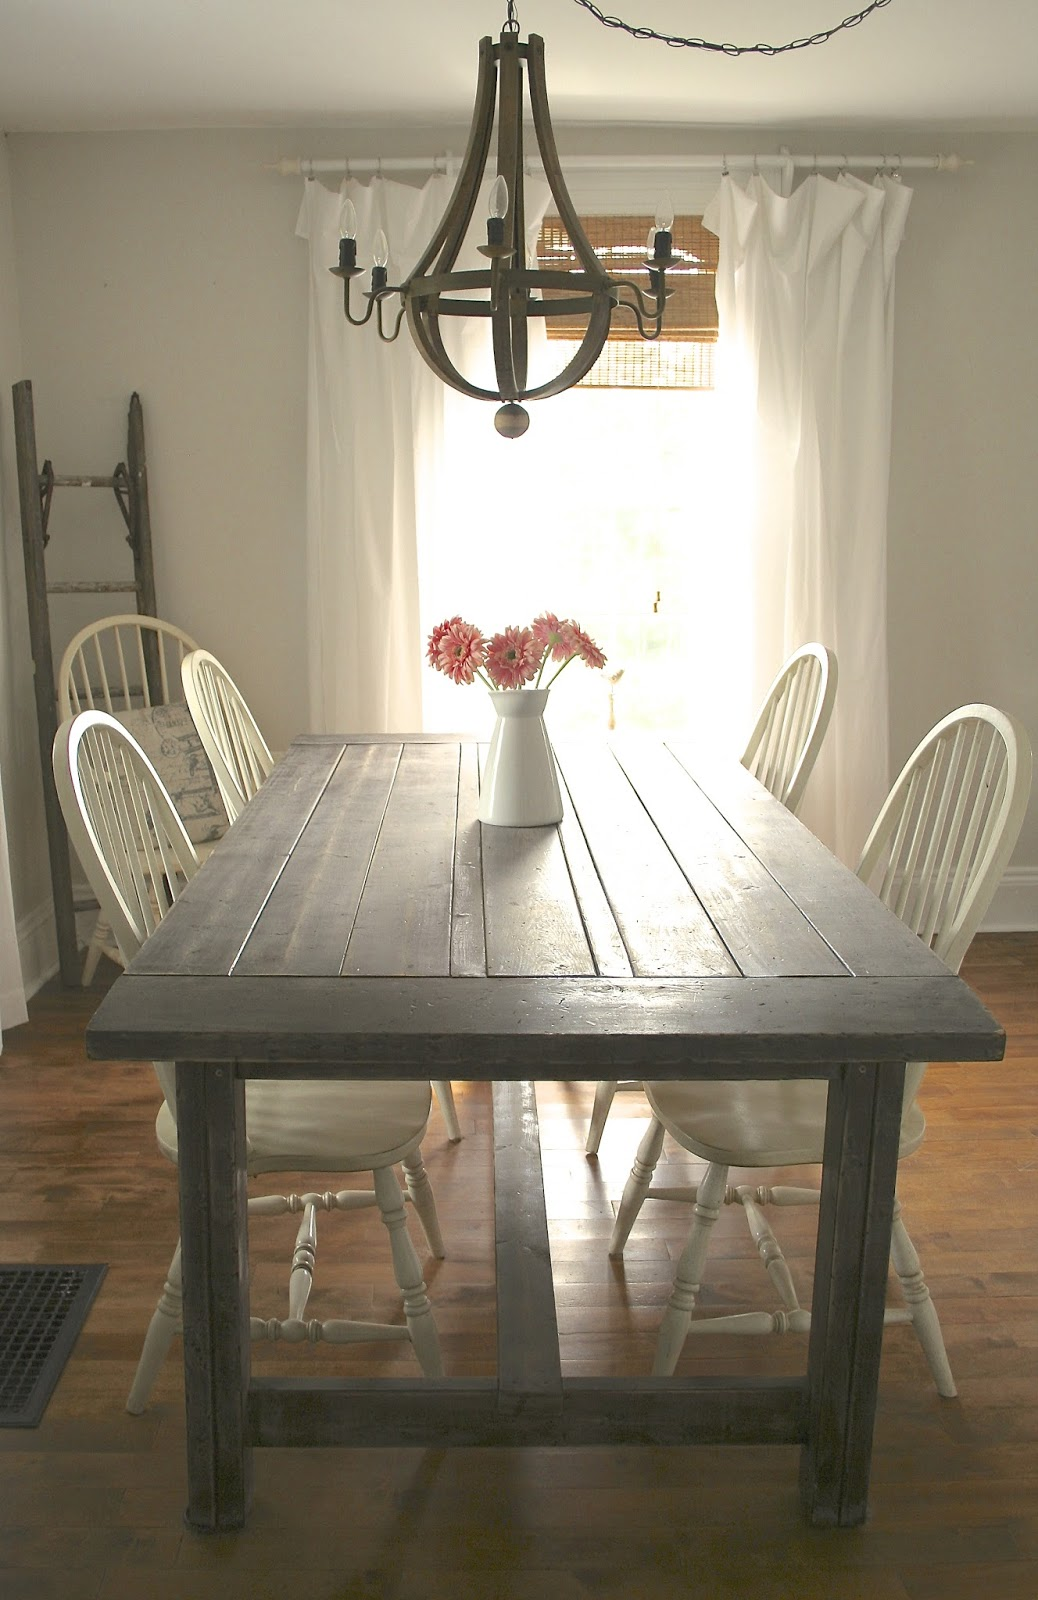 DIY Rustic Farmhouse Table Makeover